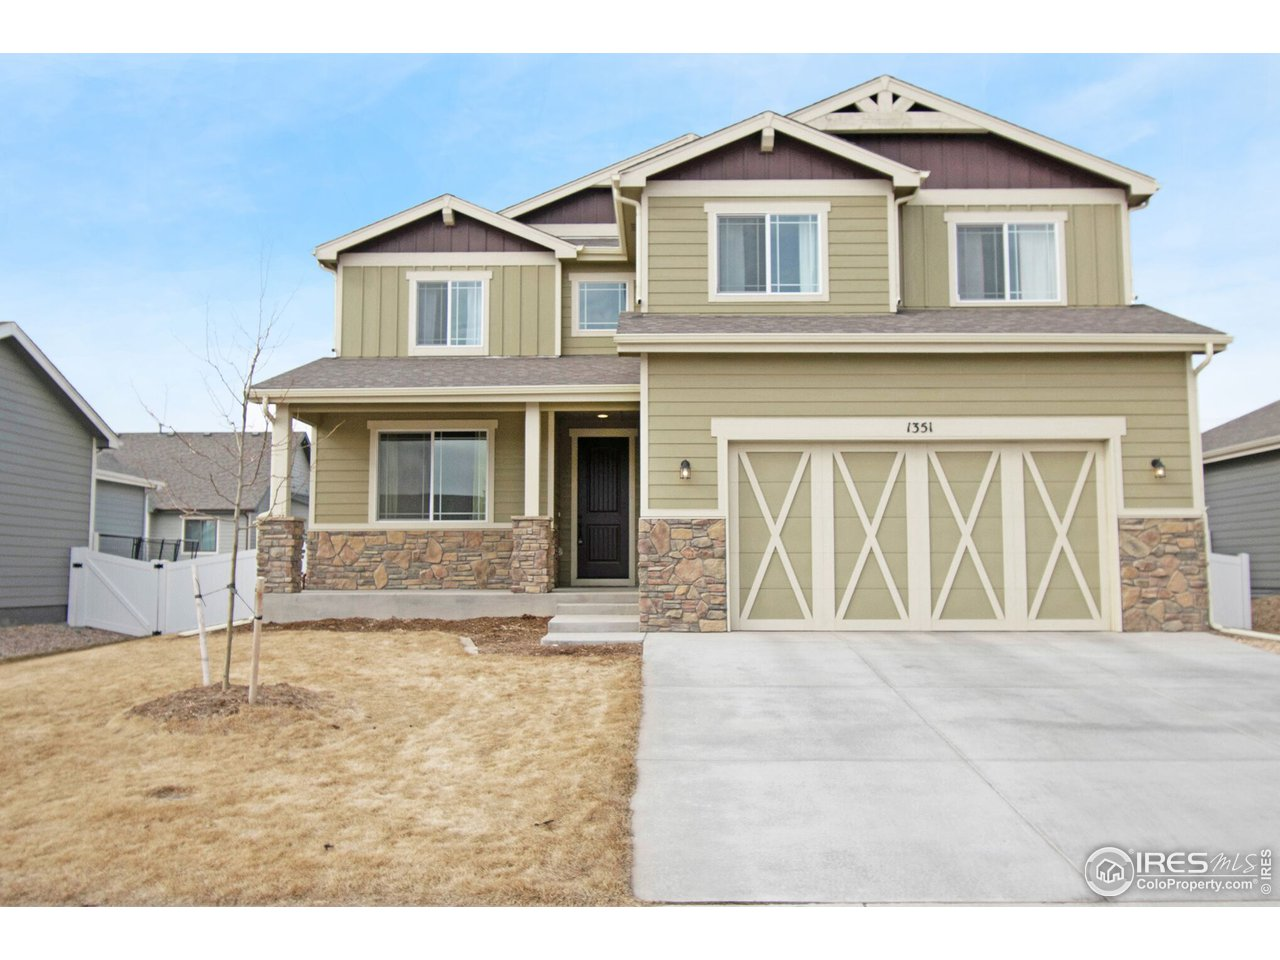 1351 FRONTIER CT, EATON, CO 80615